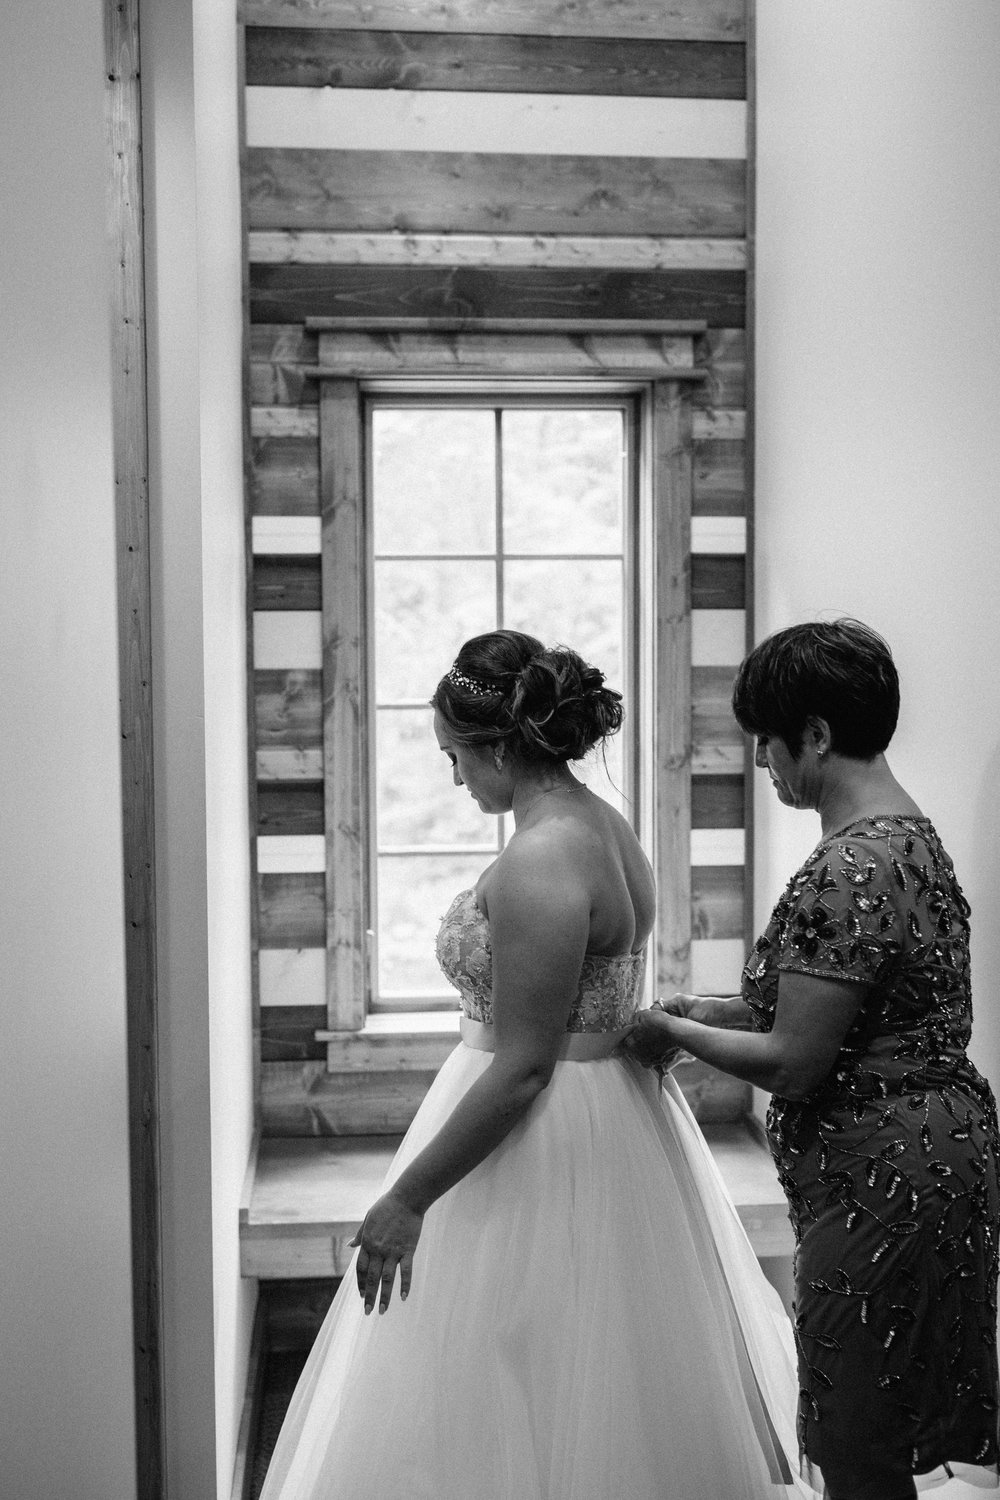 Mother of the bride tying bride's wedding dress bow in cabin at Grand View Lodge. Photography by Britt DeZeeuw.